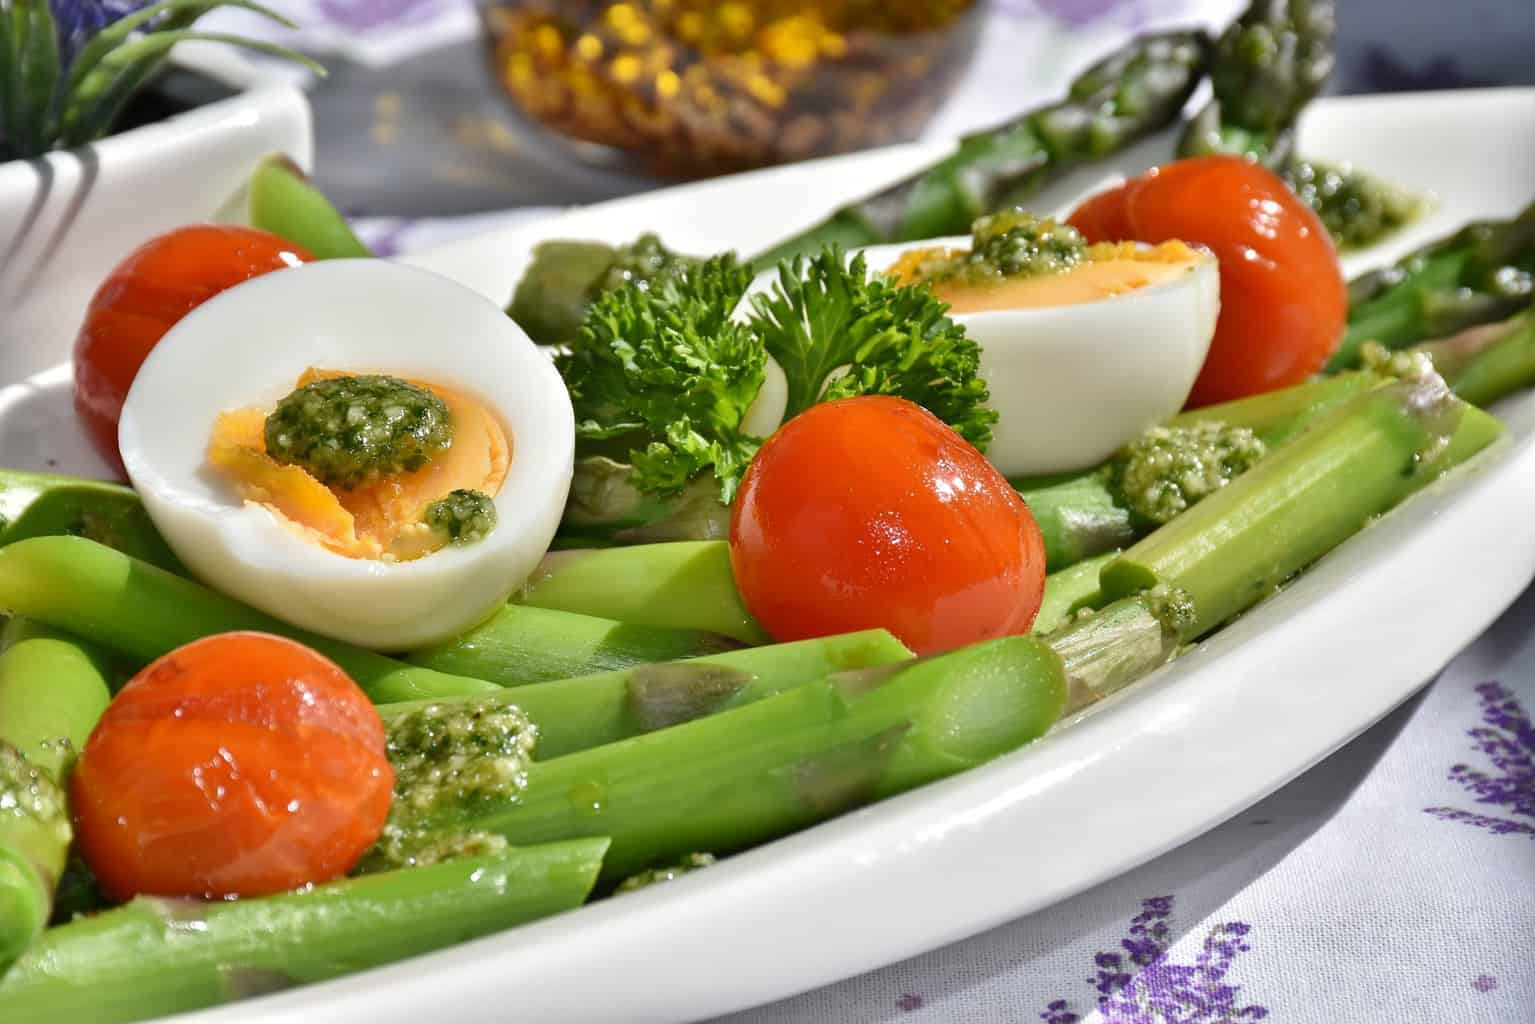 example of a low carb meal - green asparagus and boiled eggs